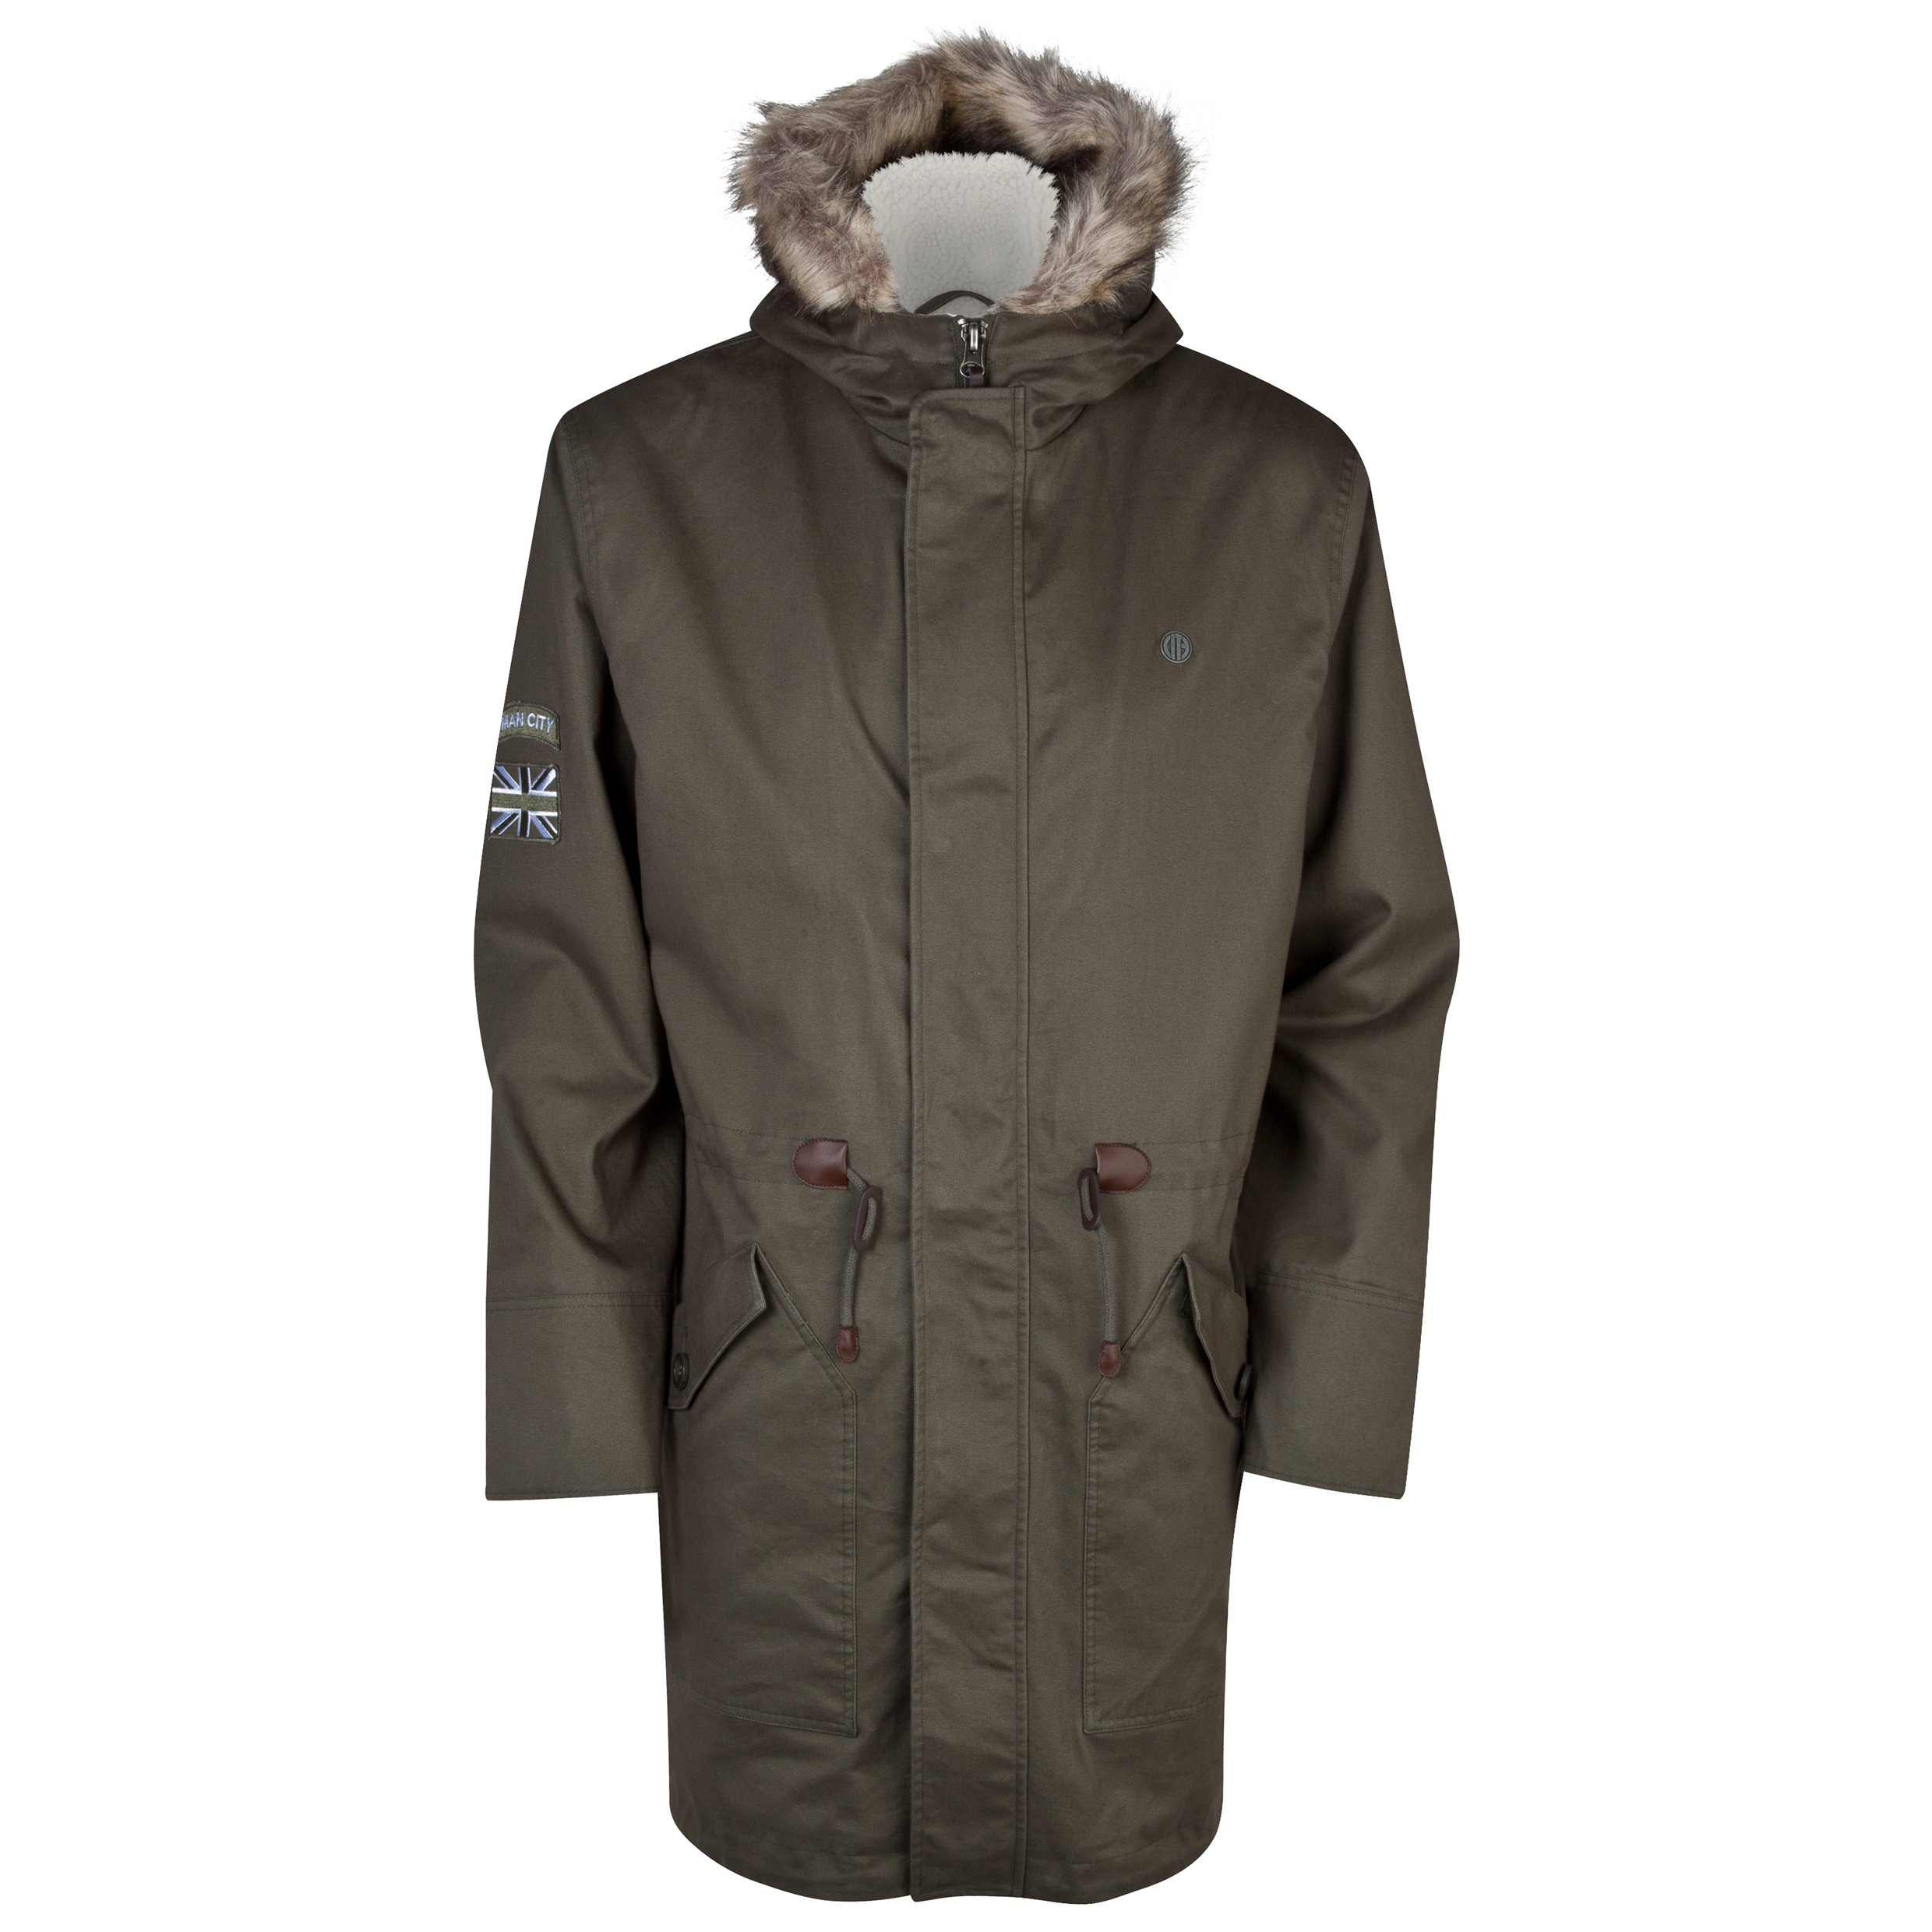 Manchester City Mod Parka - Mens Green